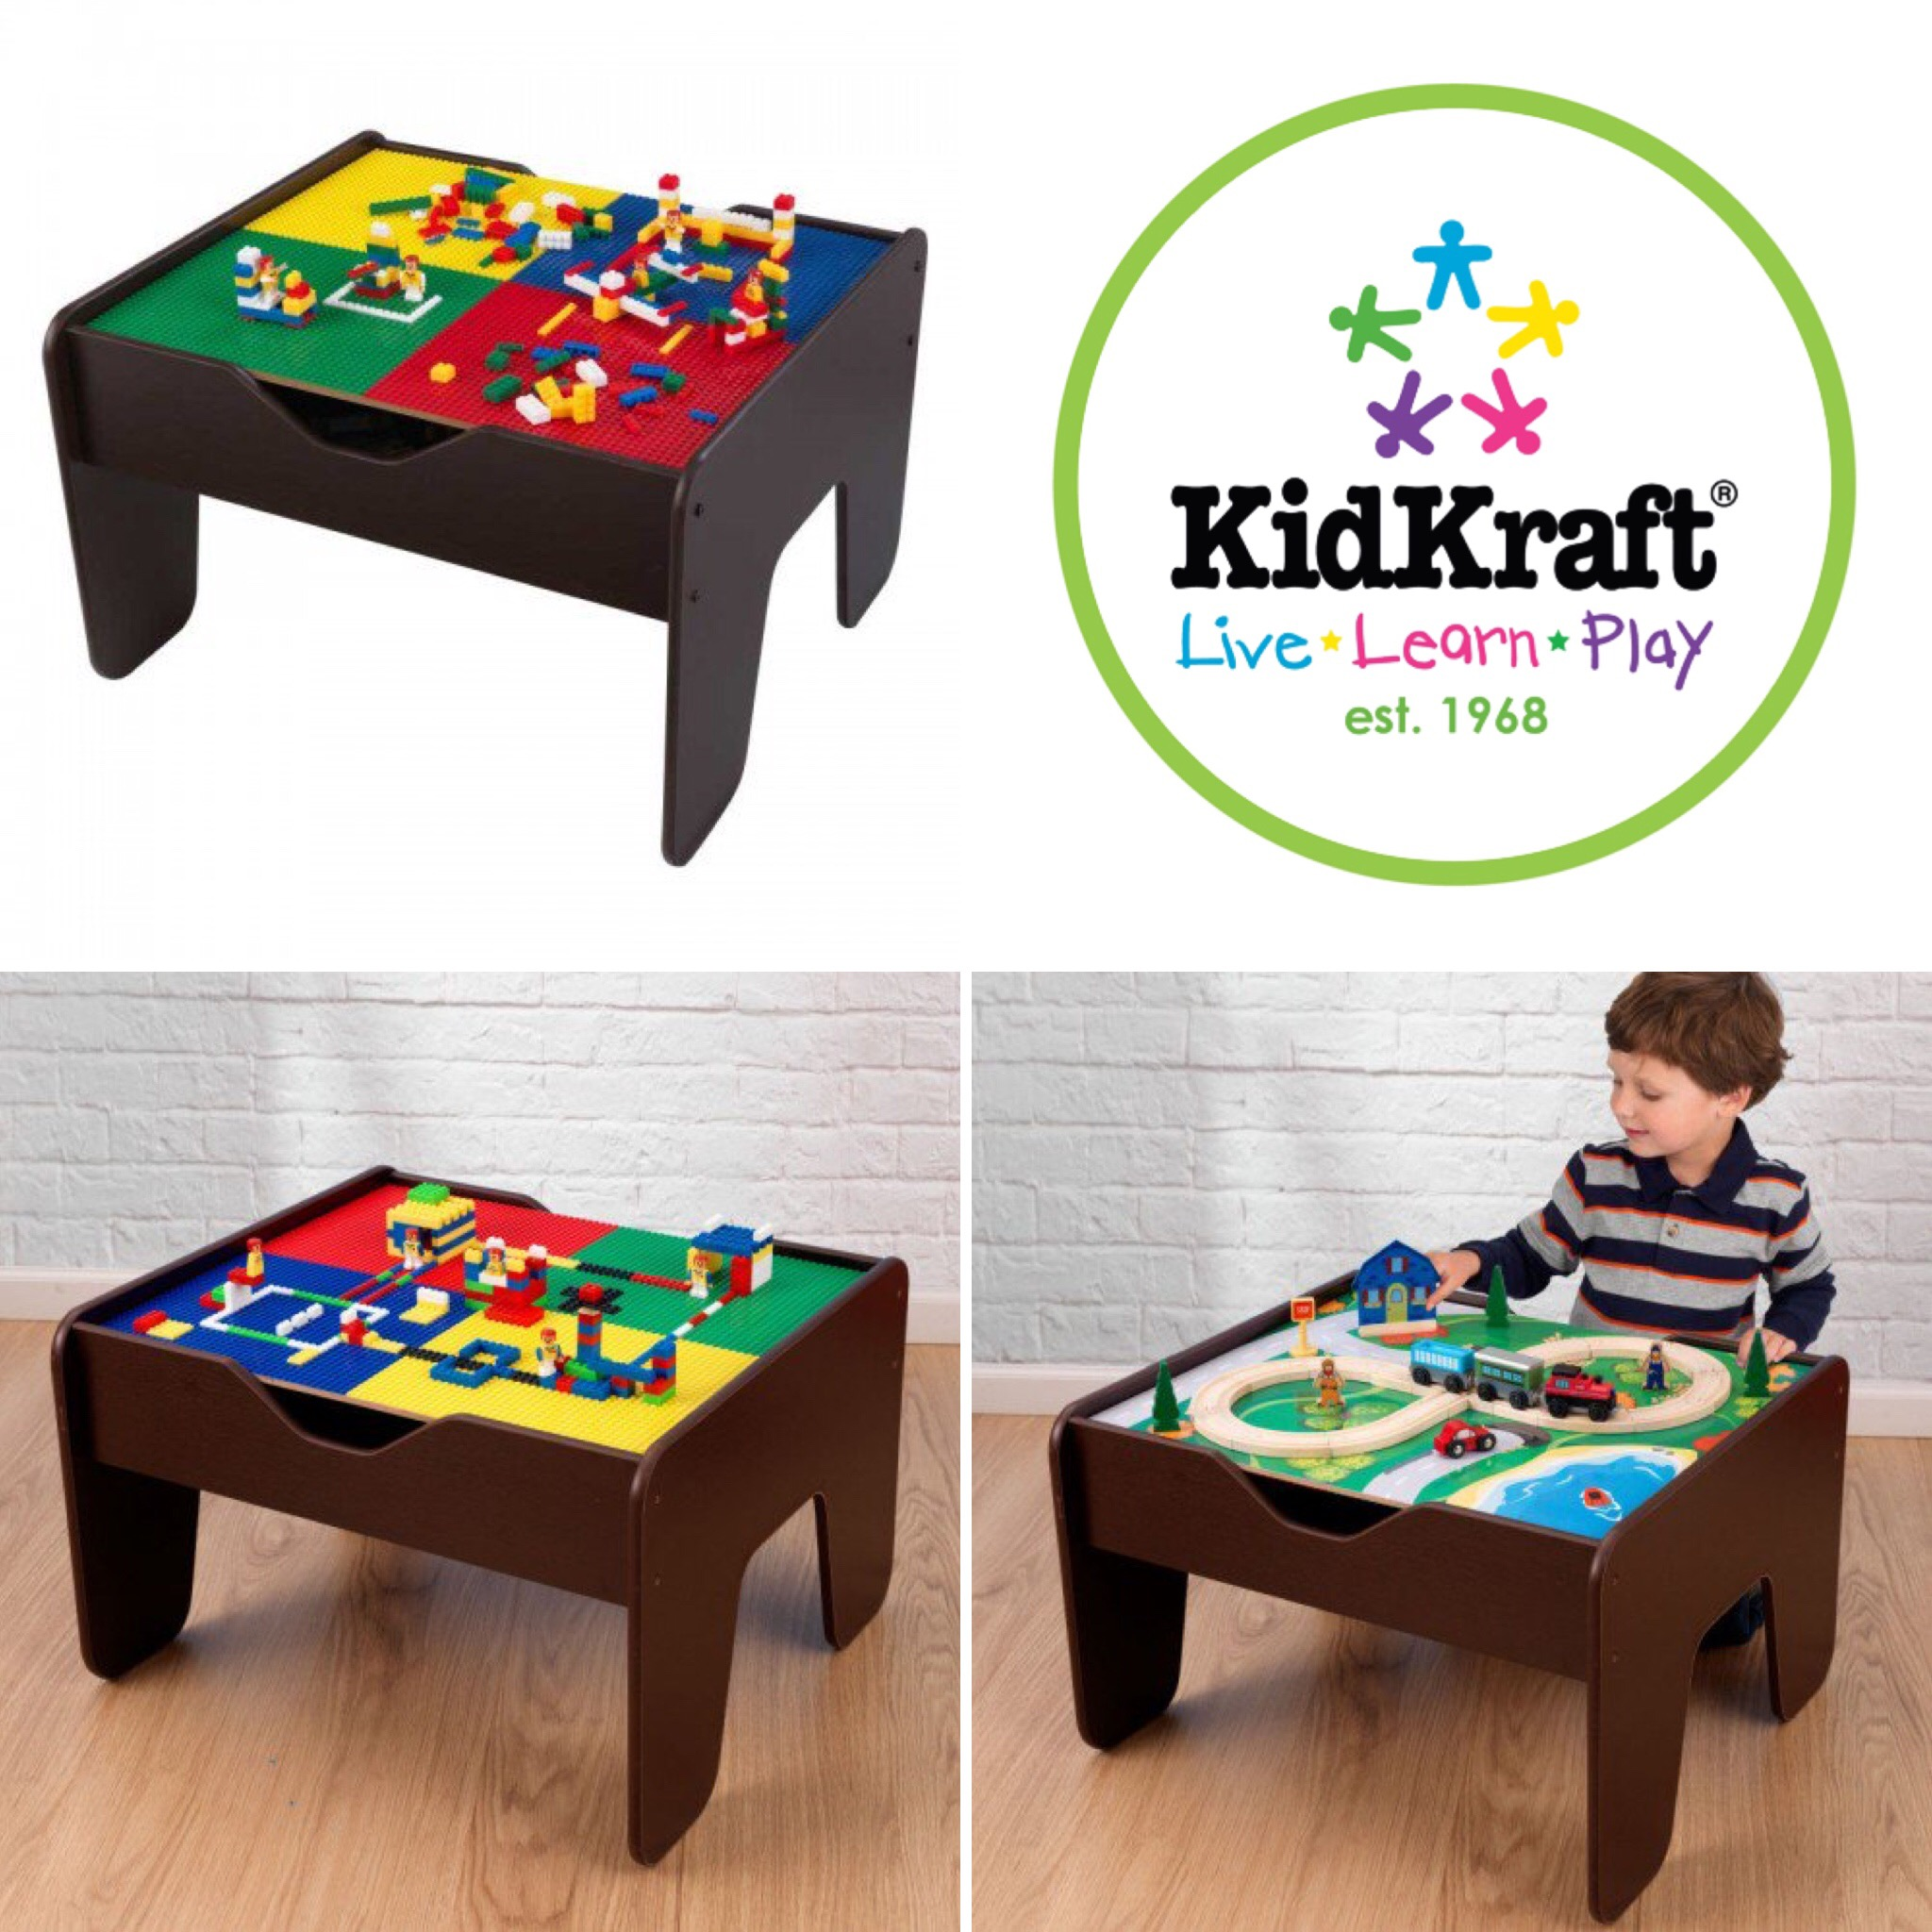 Kidkraft 2 In 1 Activity Table With Lego Compatible Board Natural